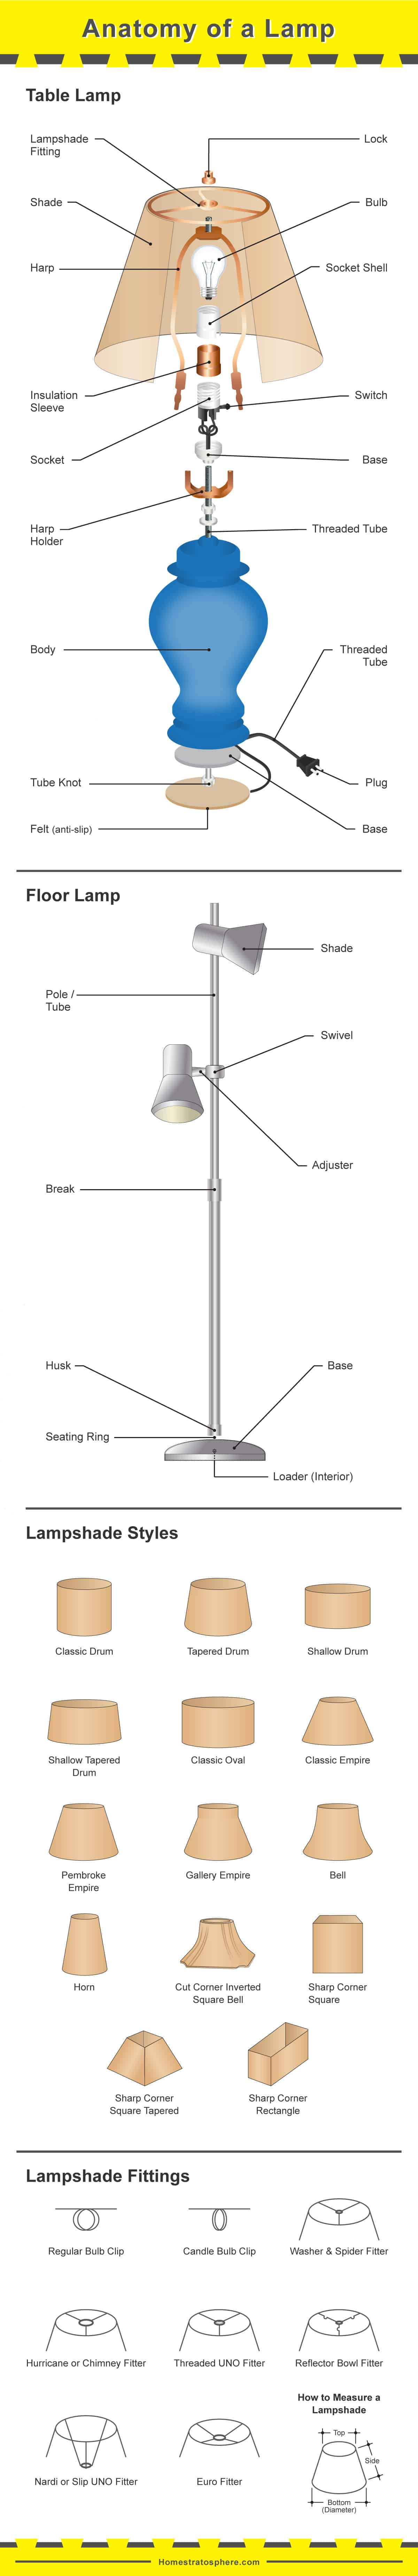 Diagram of Parts of A Lamp